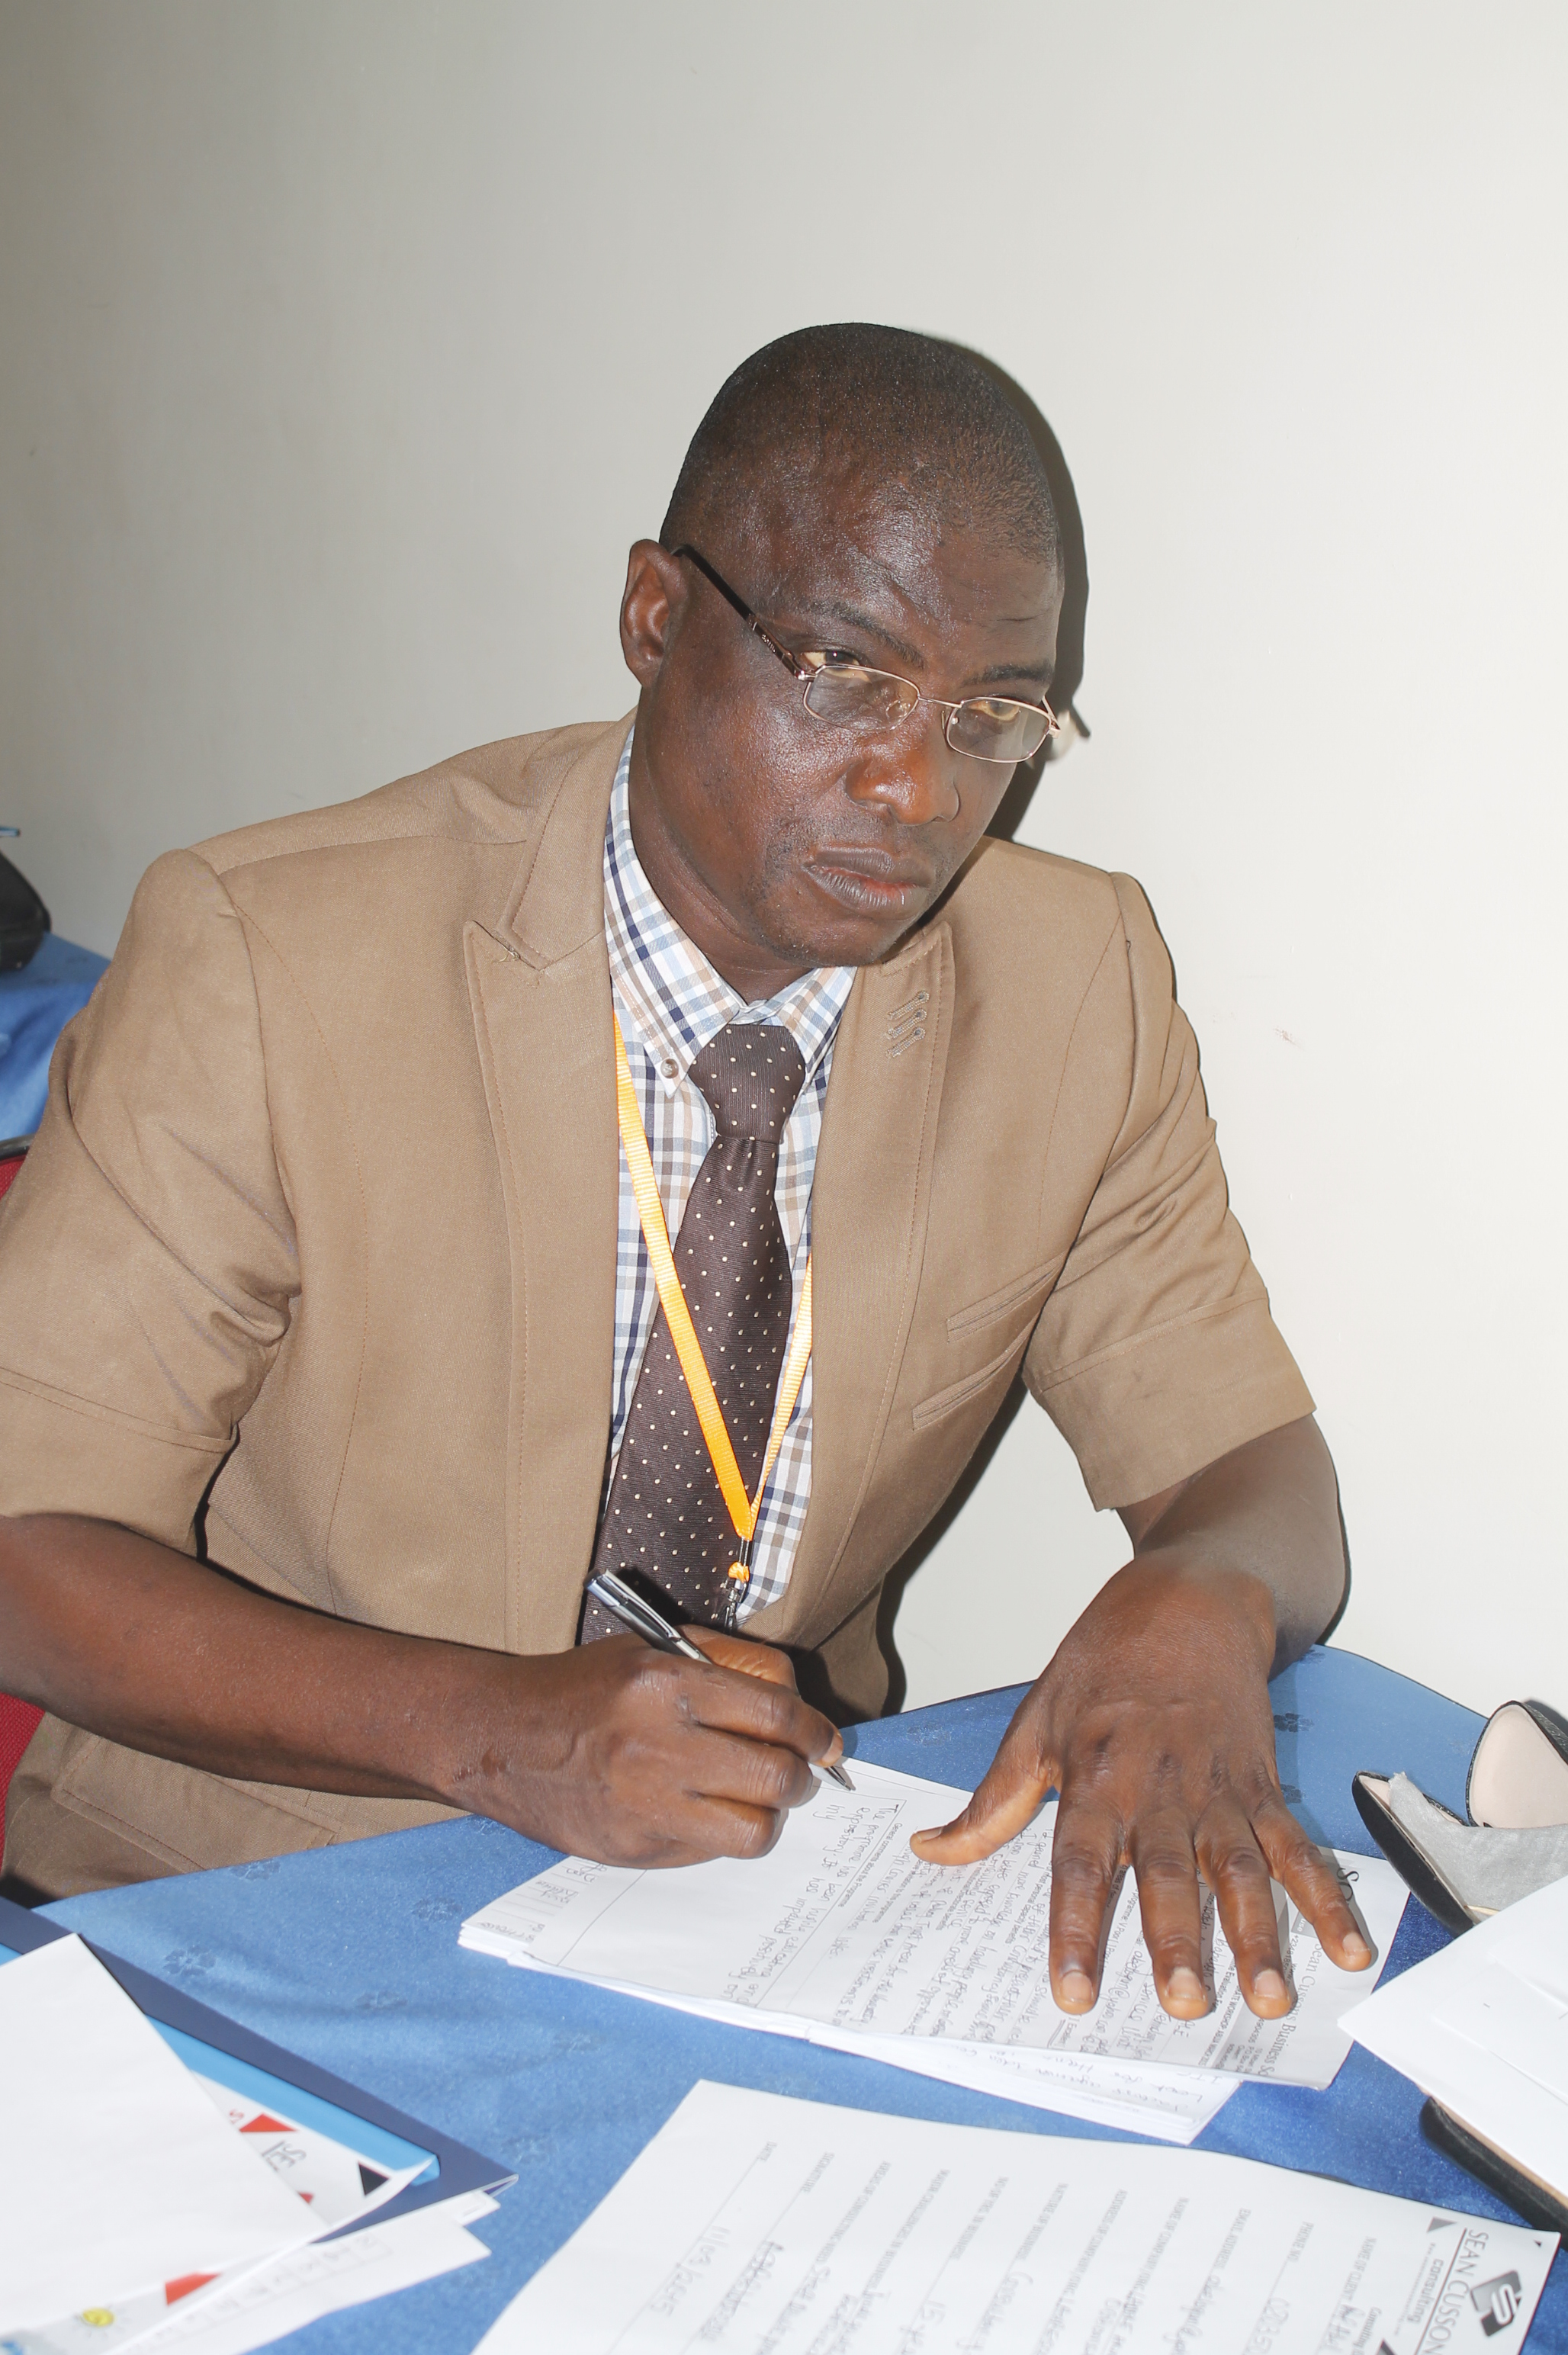 The Programme has been highly educating and expository. It has impacted positively on my attitude, skills and knowledge. I am now better exposed to areas of opportunities for consultancy services. I have now developed policy thrust areas and will sure be able to successfully generate and/or transplant innovative ideas. – Prof. A.B Ogunwale, Director Consultancy Services, LAUTECH, Ogbomosho